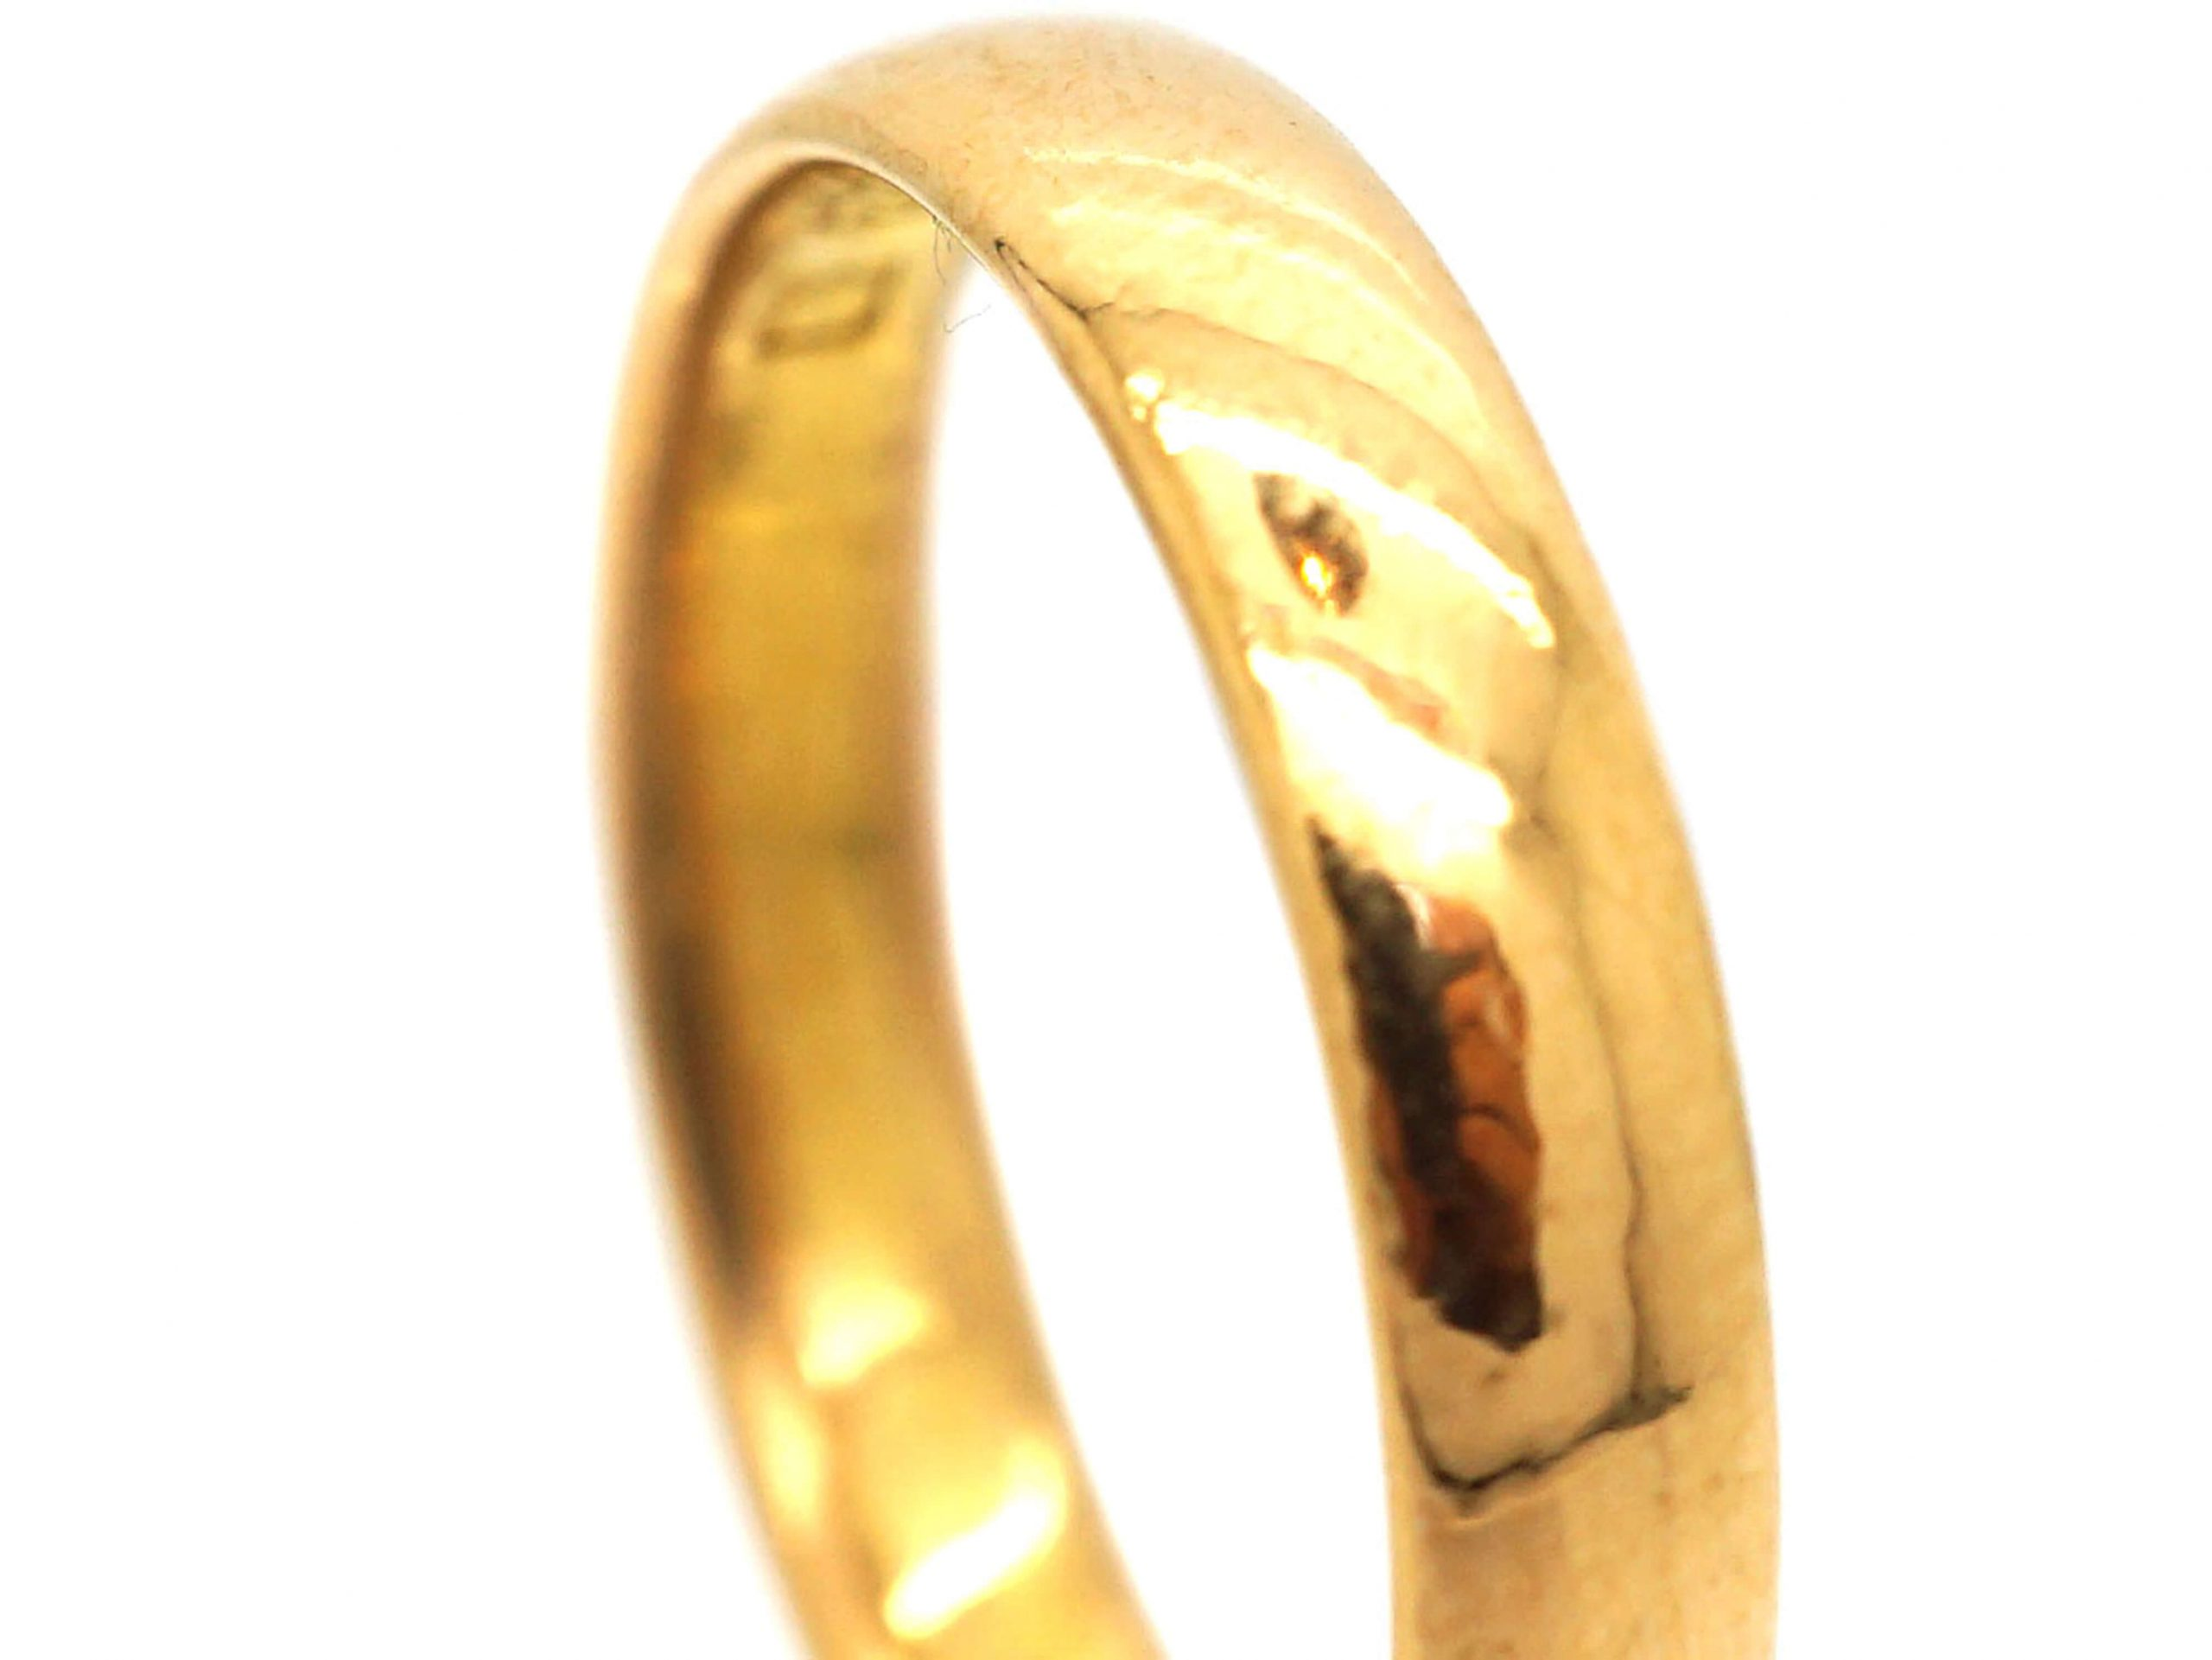 22ct Gold Wedding Ring Assayed in 1934